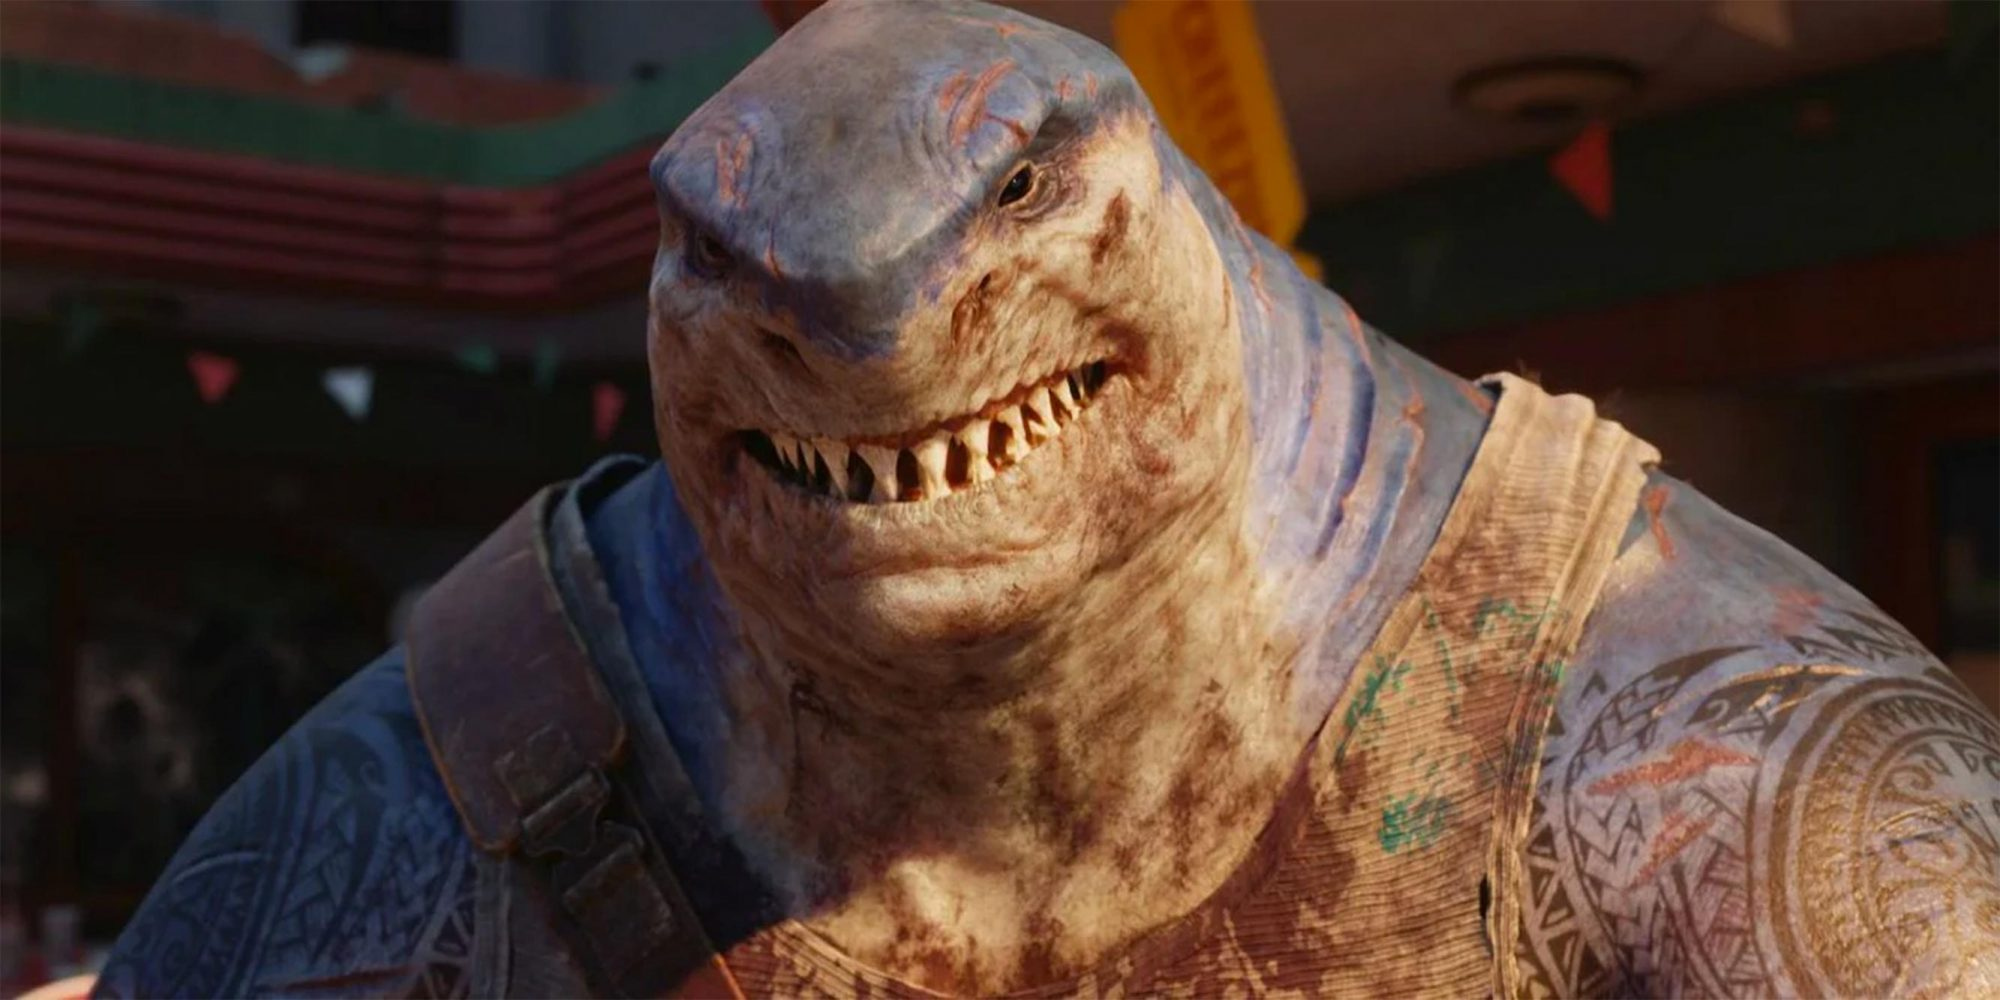 King Shark in Suicide Squad: Kill the Justice League